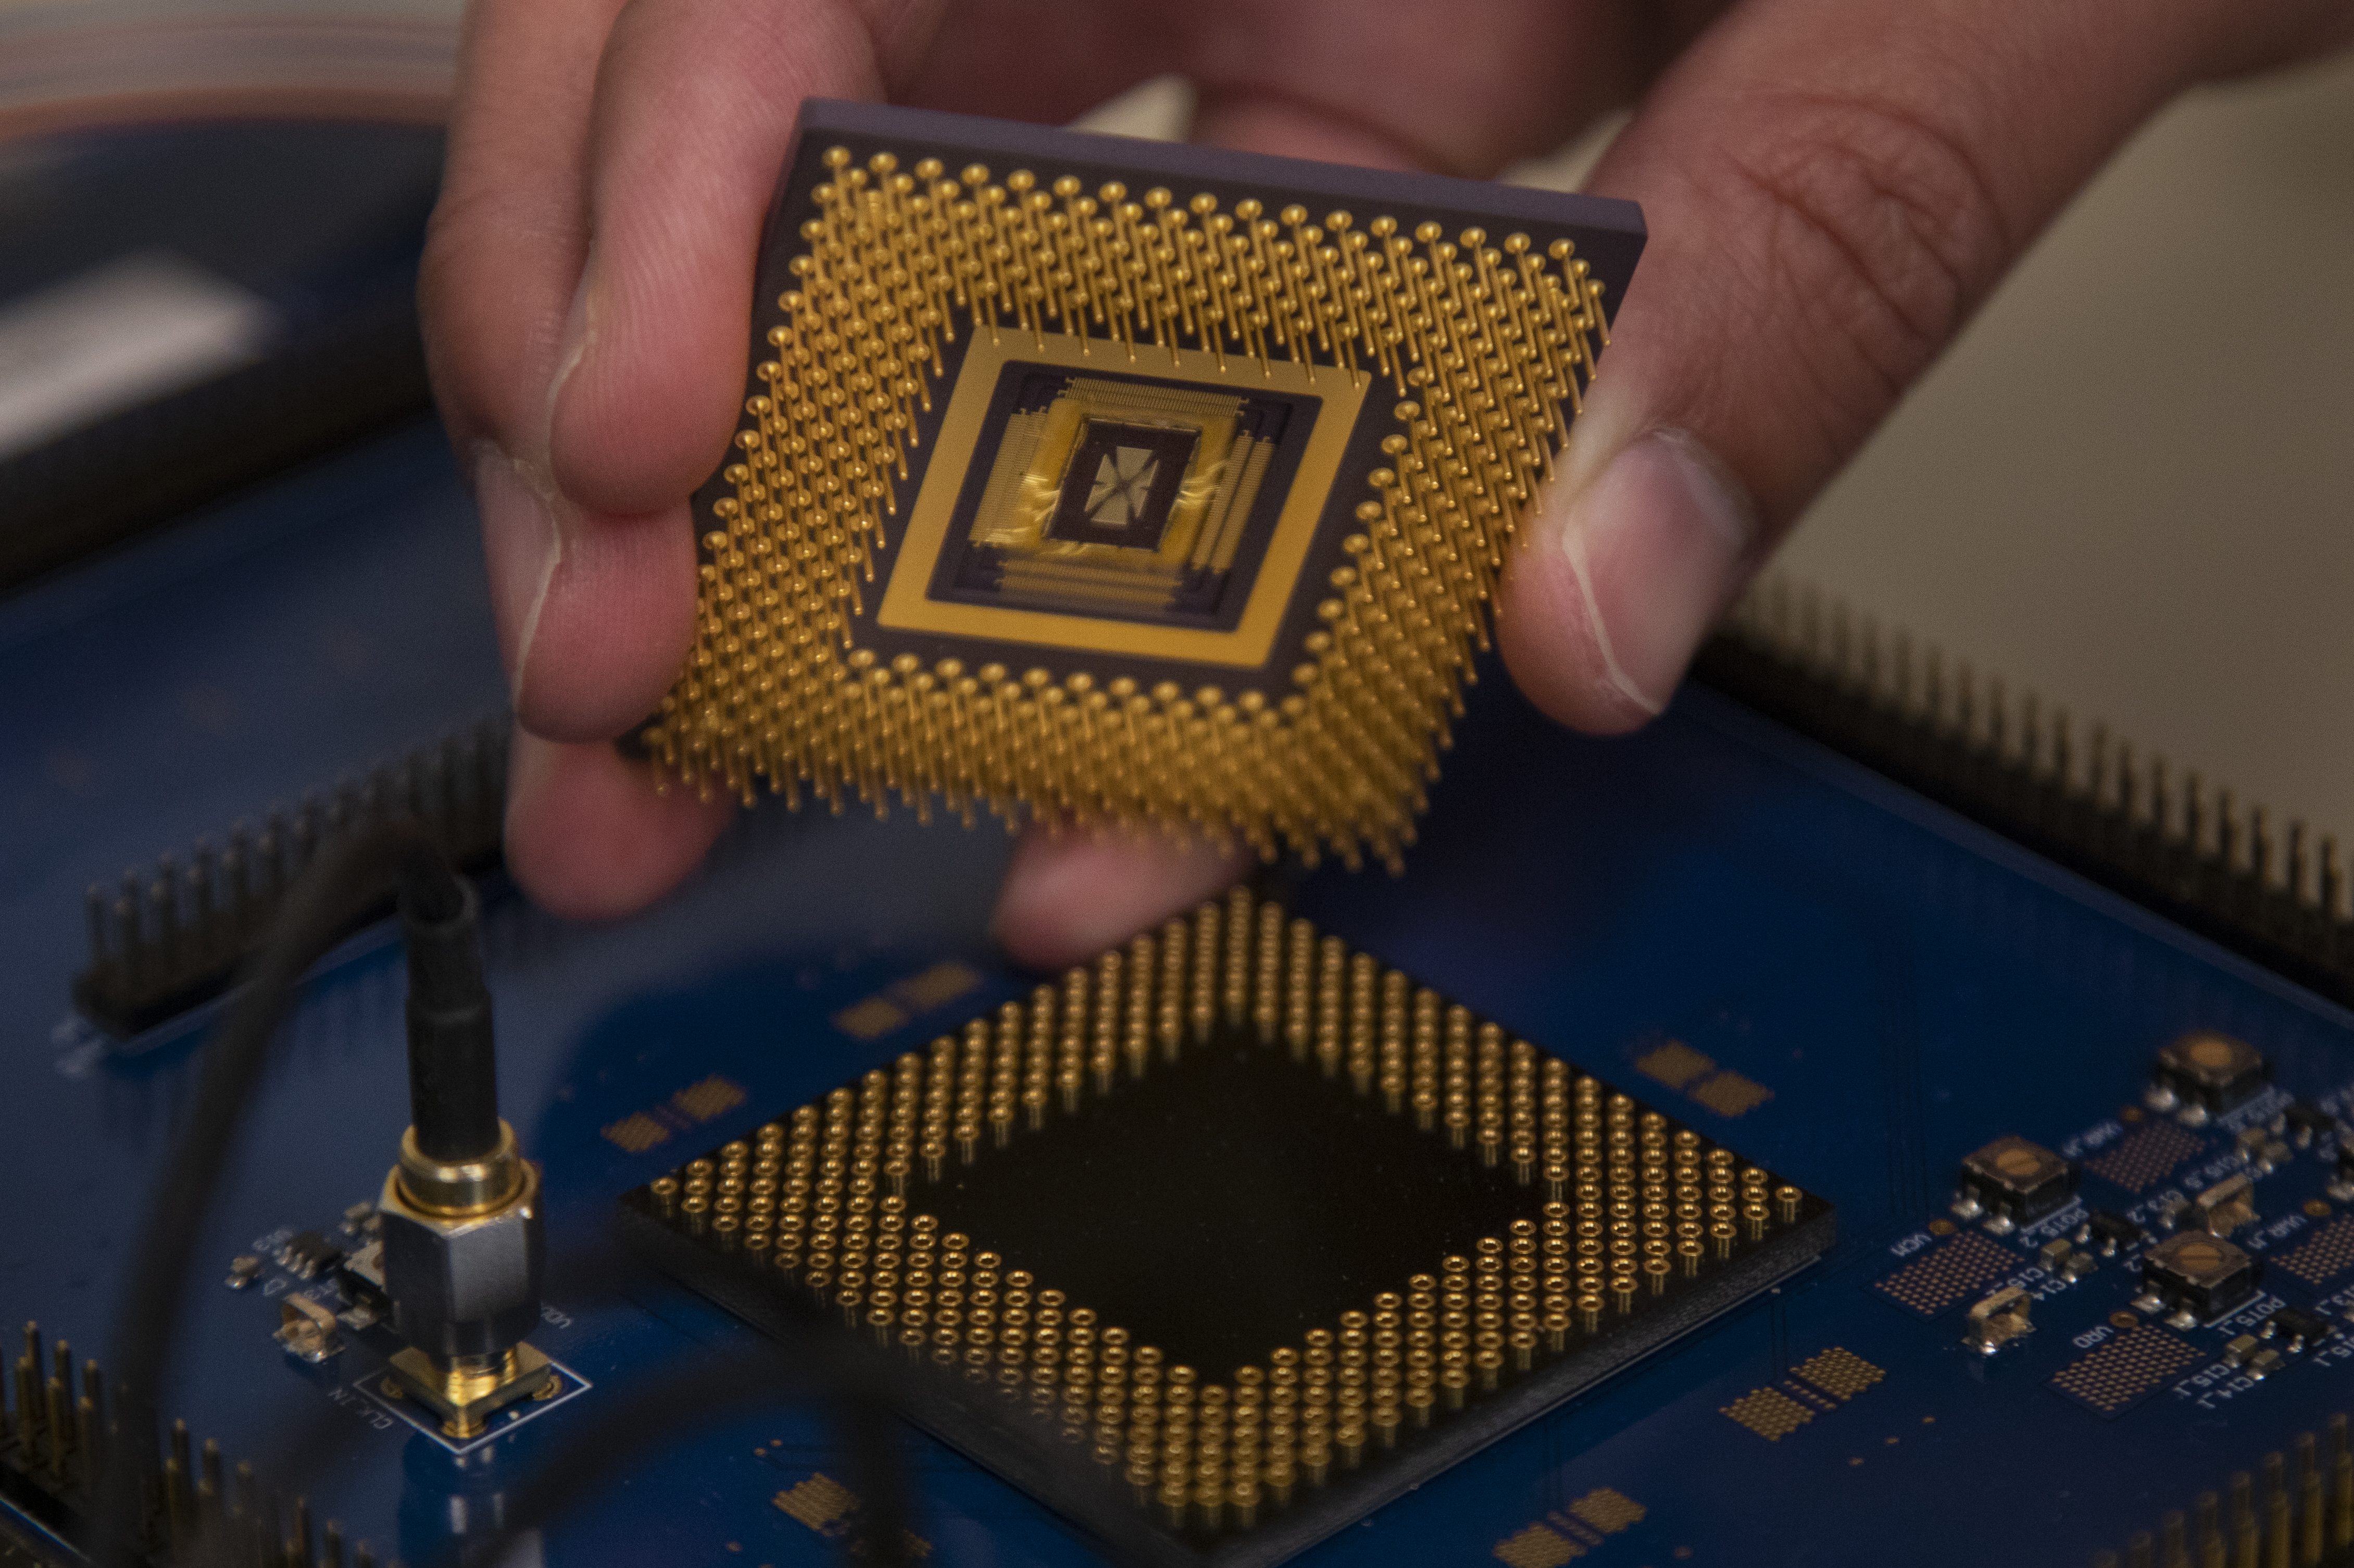 The memristor array chip plugs into the custom computer chip, forming the first programmable memristor computer. The team demonstrated that it could run three standard types of machine learning algorithms. Image credit: Robert Coelius, Michigan Engineering